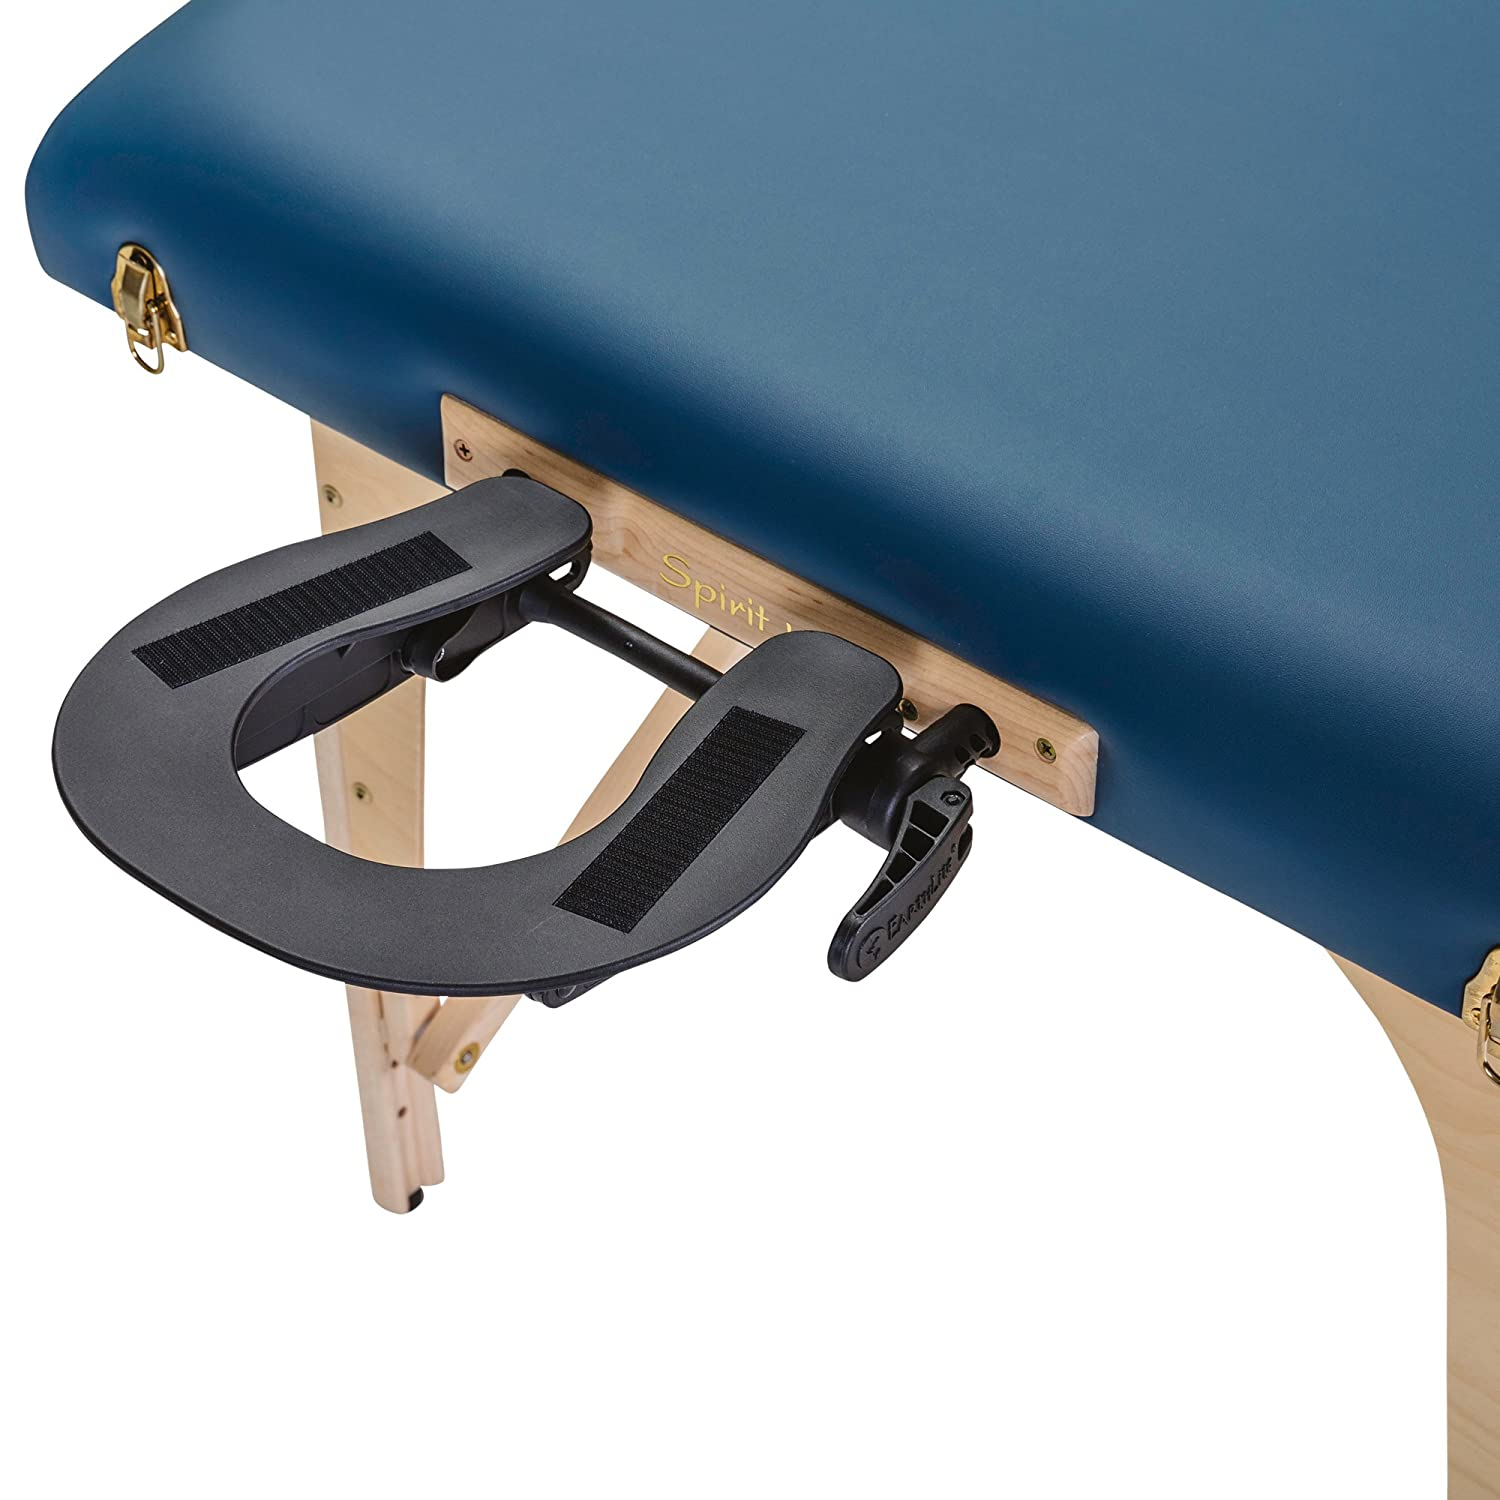 EARTHLITE Deluxe Adjustable Massage Table Face Cradle - Durable Massage Platform, Headrest Earthlite Massage Tables Inc. 31000